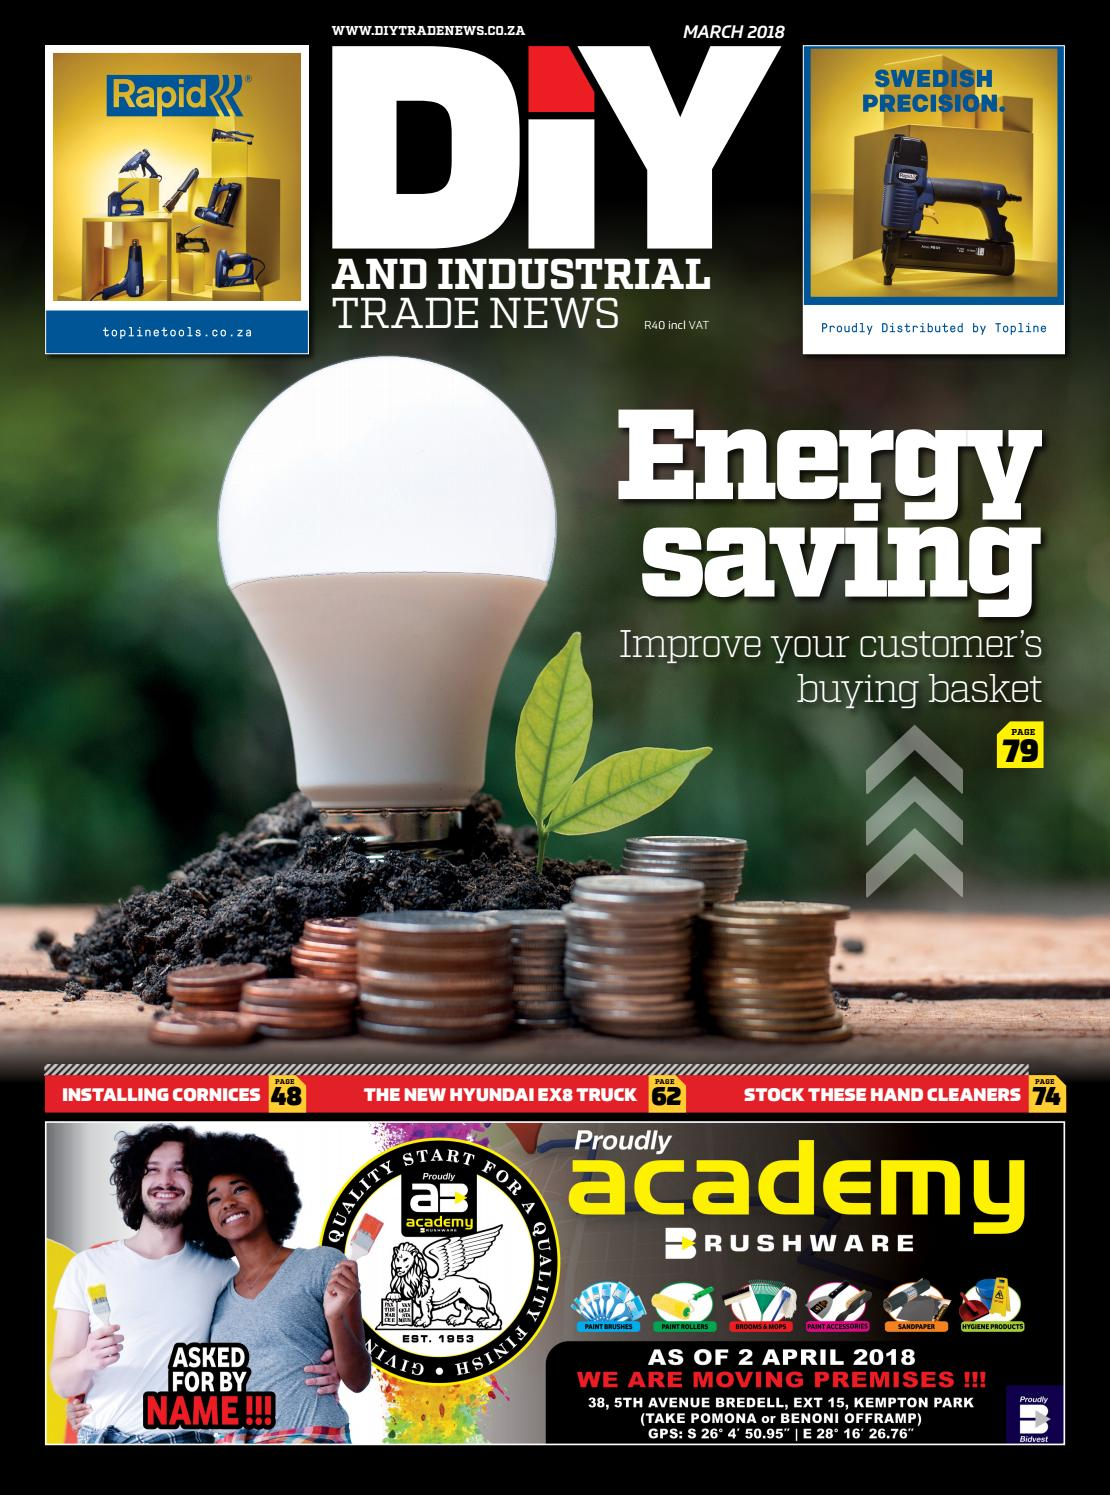 DIY and Industrial Trade News - March 2018 by New Media B2B